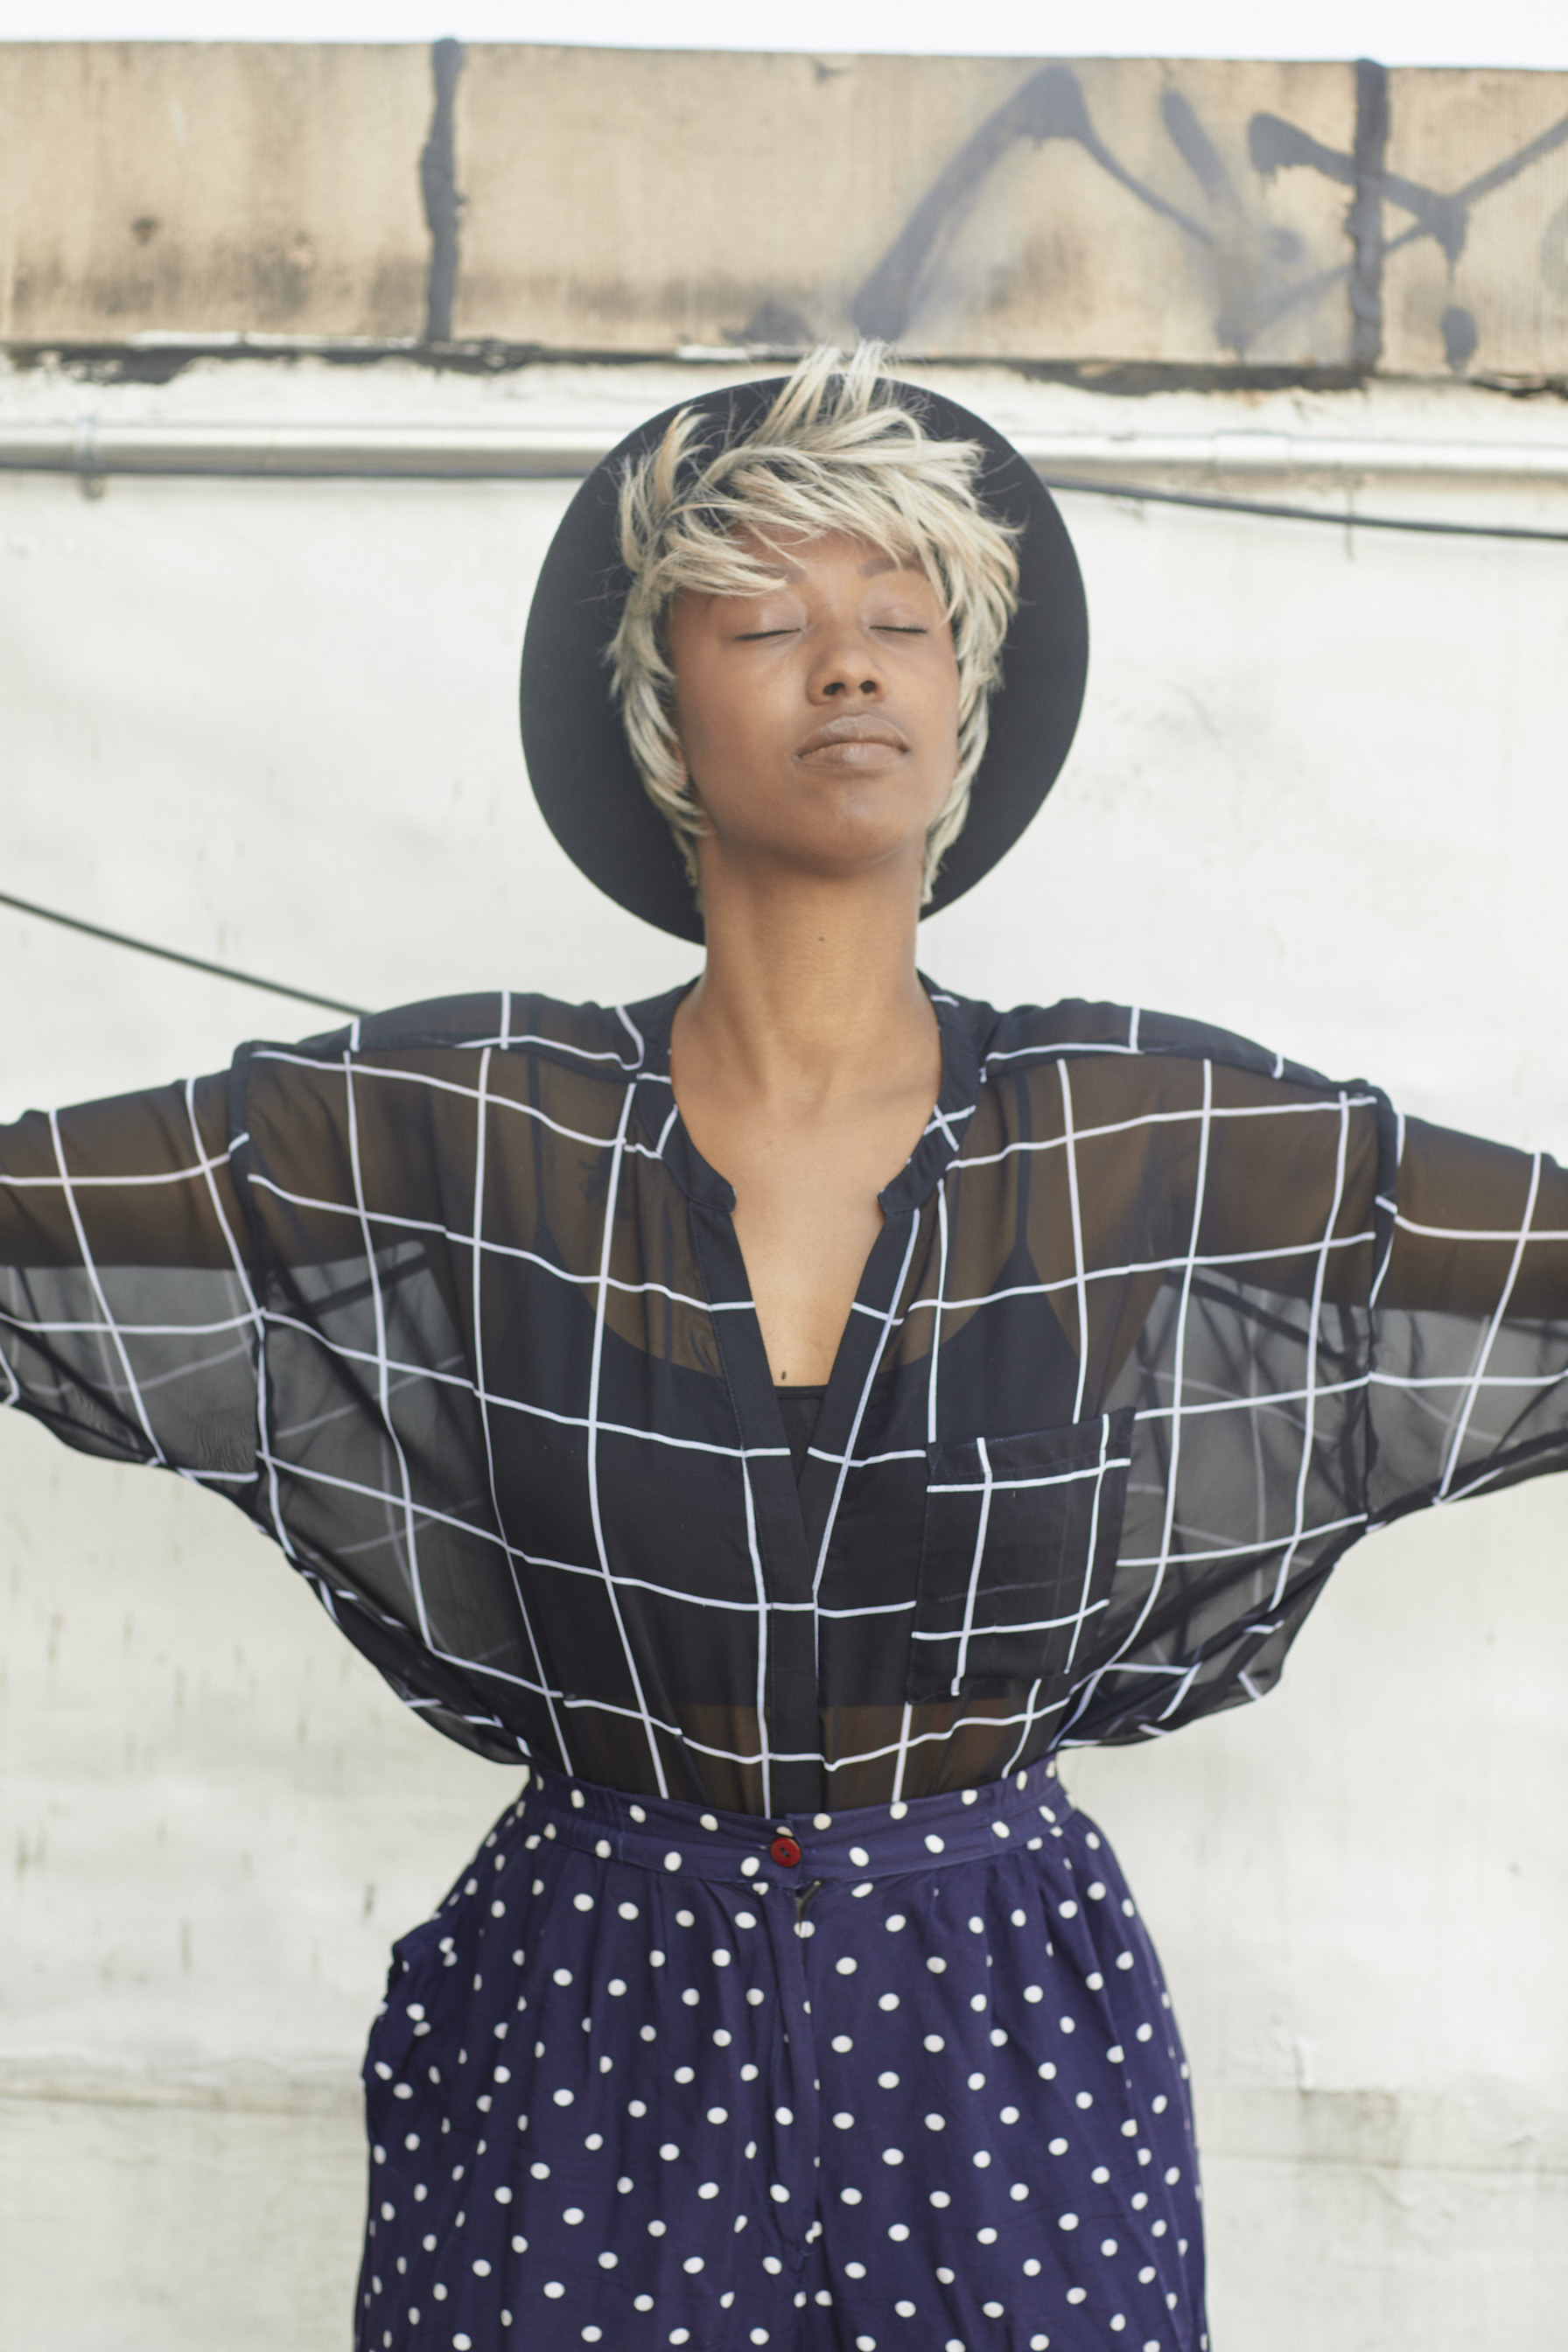 Pattern mixing with a sheer top and high waist pants // A Week Of Outfits With Dominique Drakeford, Founder Of Melanin & Sustainable Style on The Good Trade